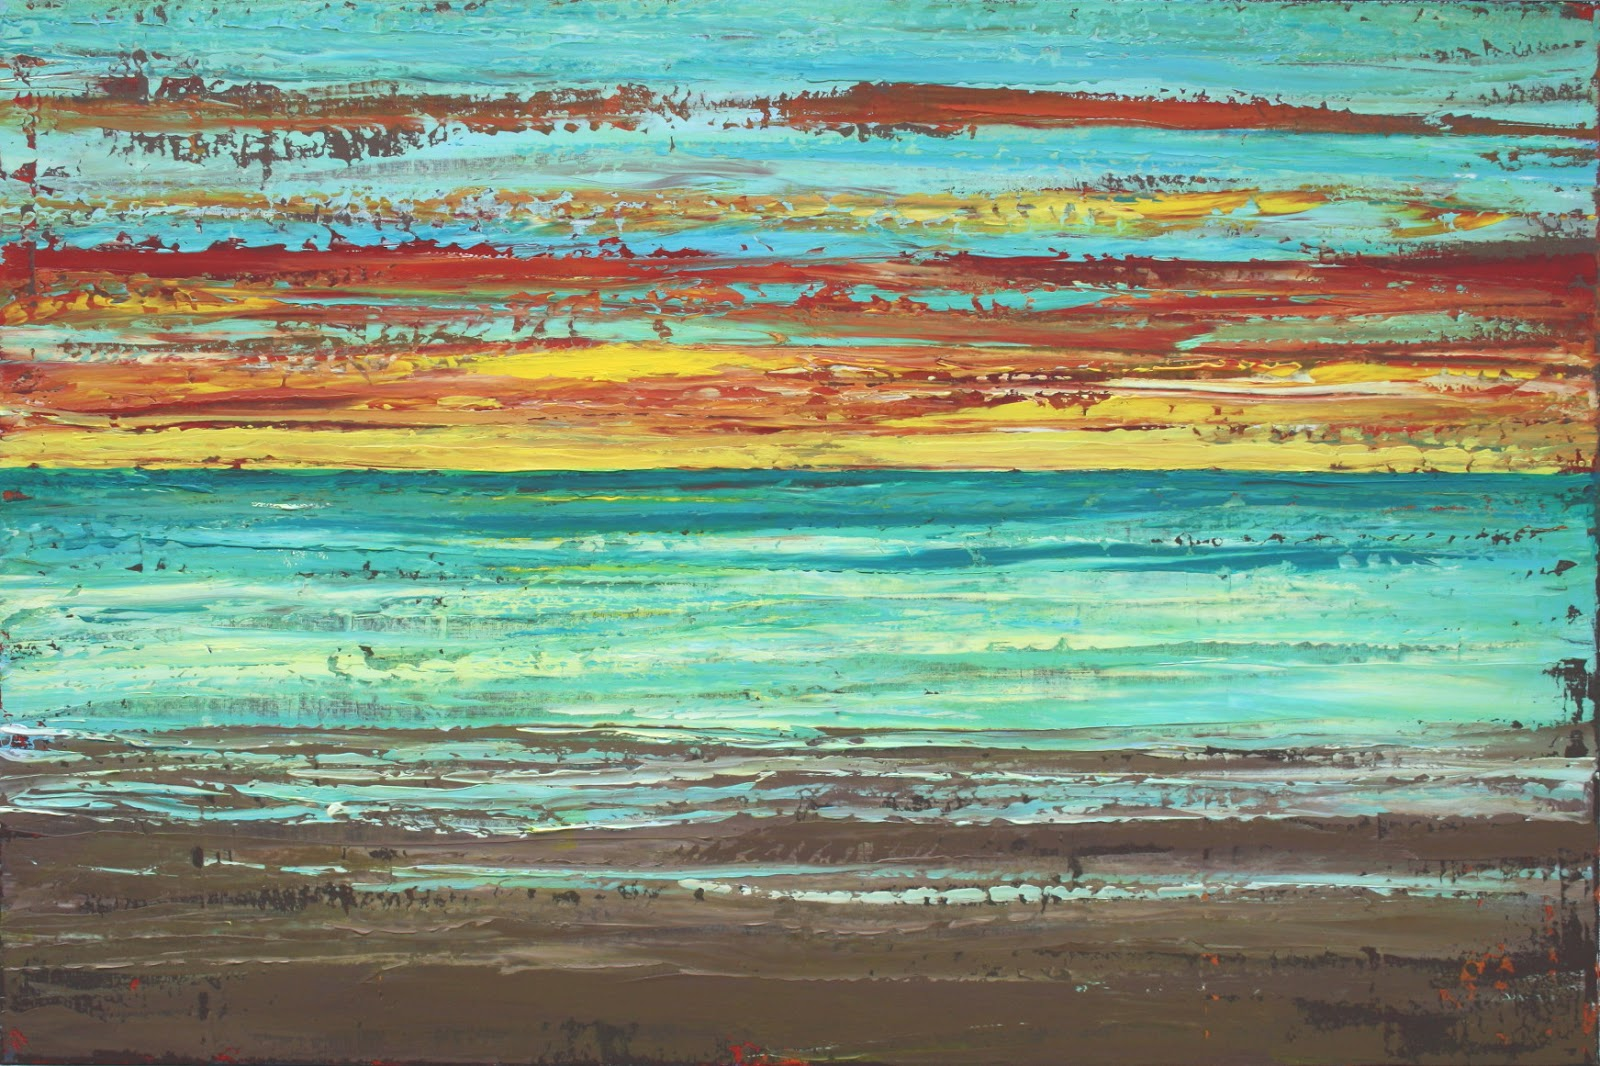 Sage Mountain Studio: Abstract Beach Painting - Sunset Beach